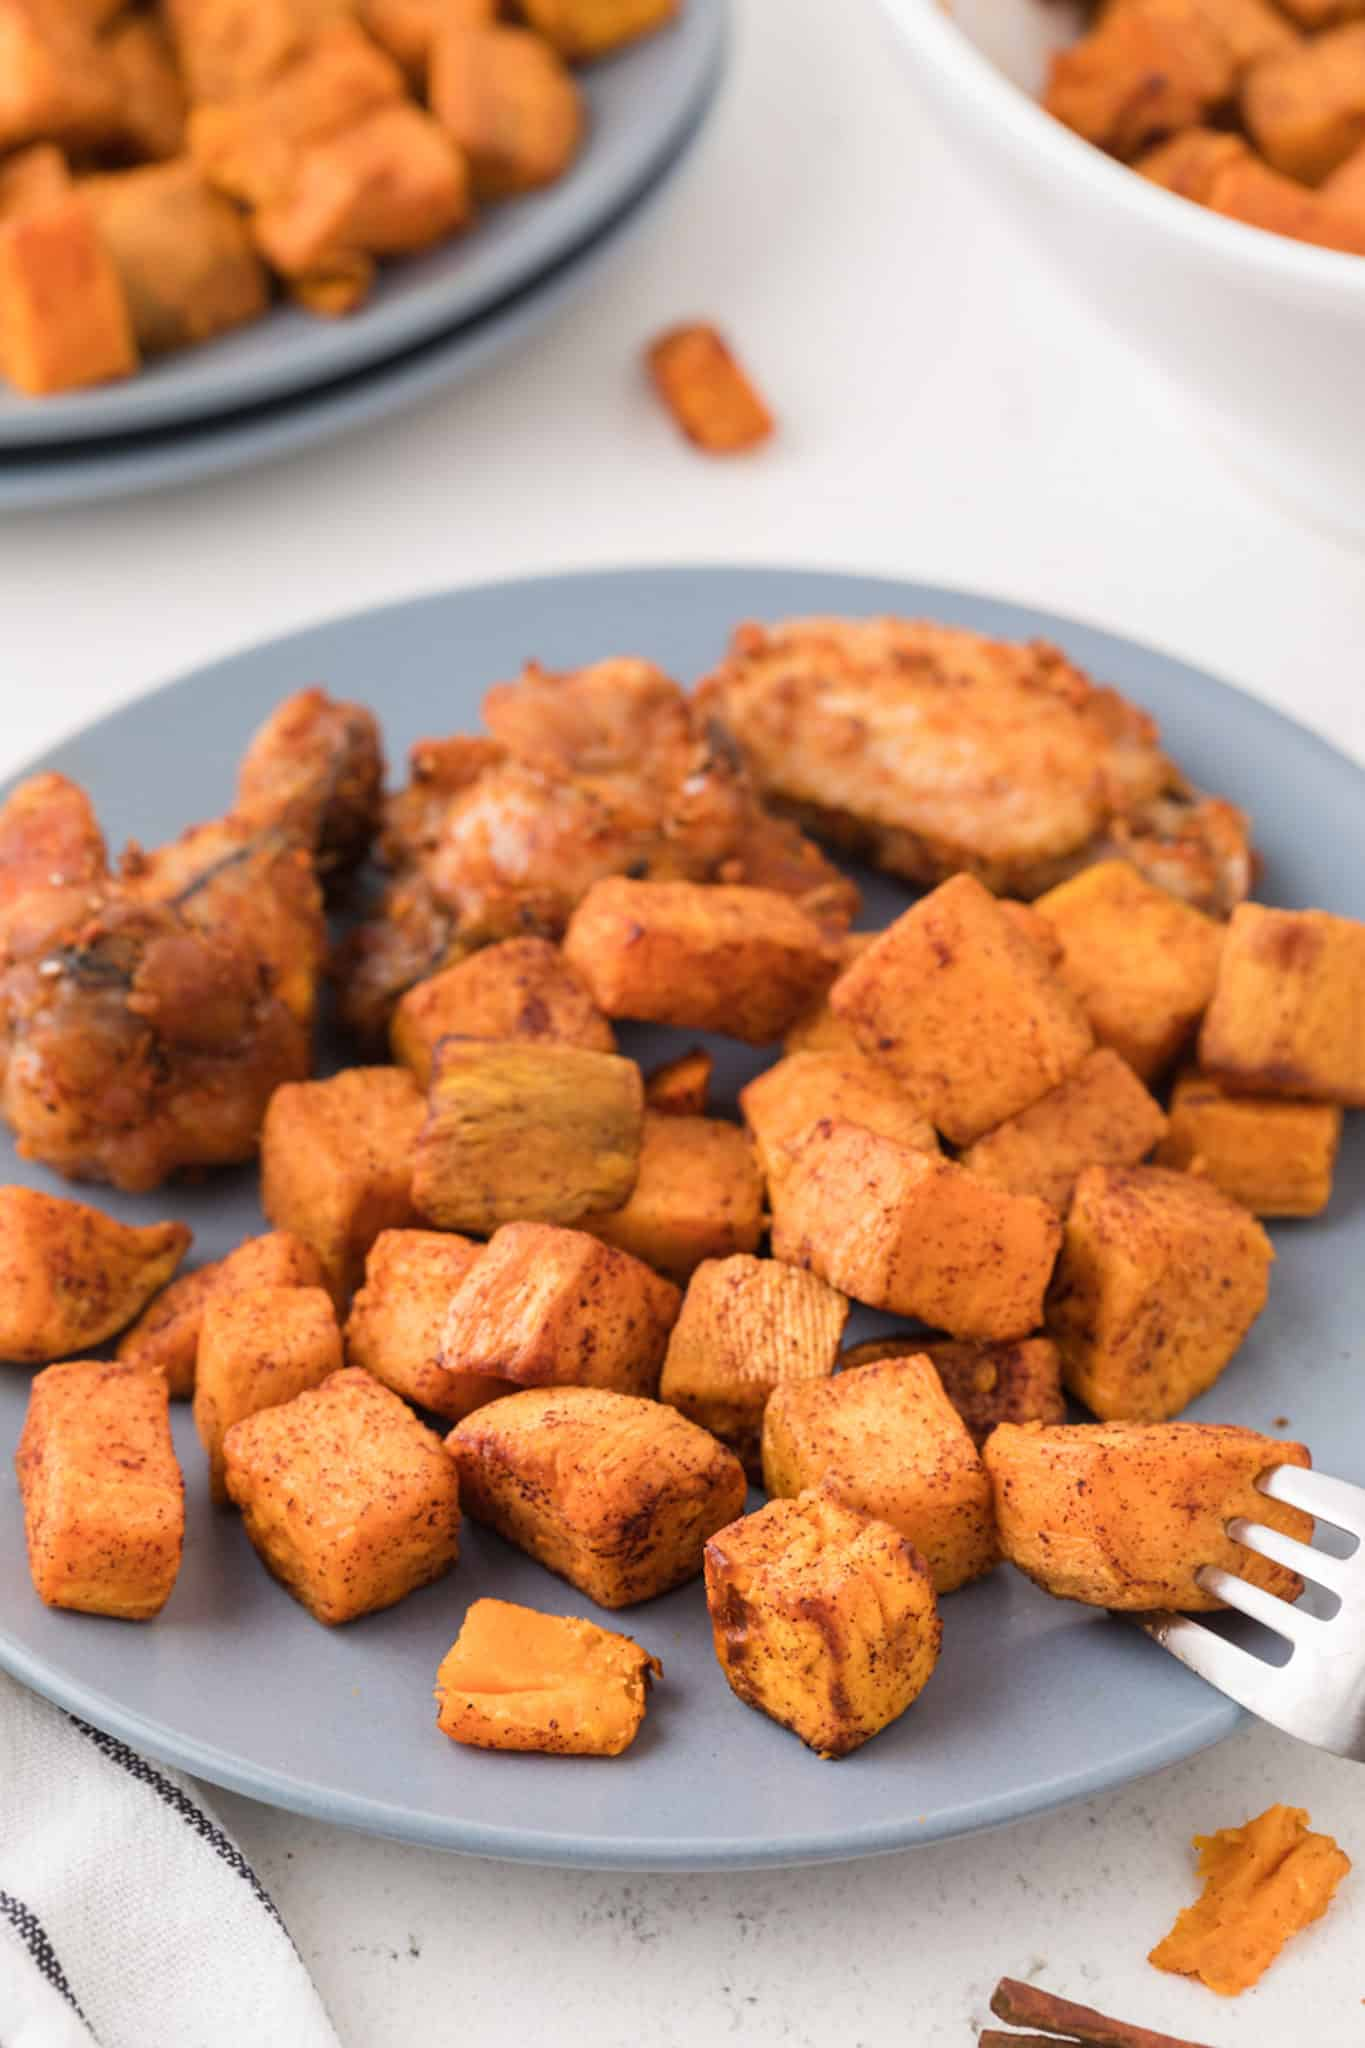 bowl of cooked sweet potato cubes